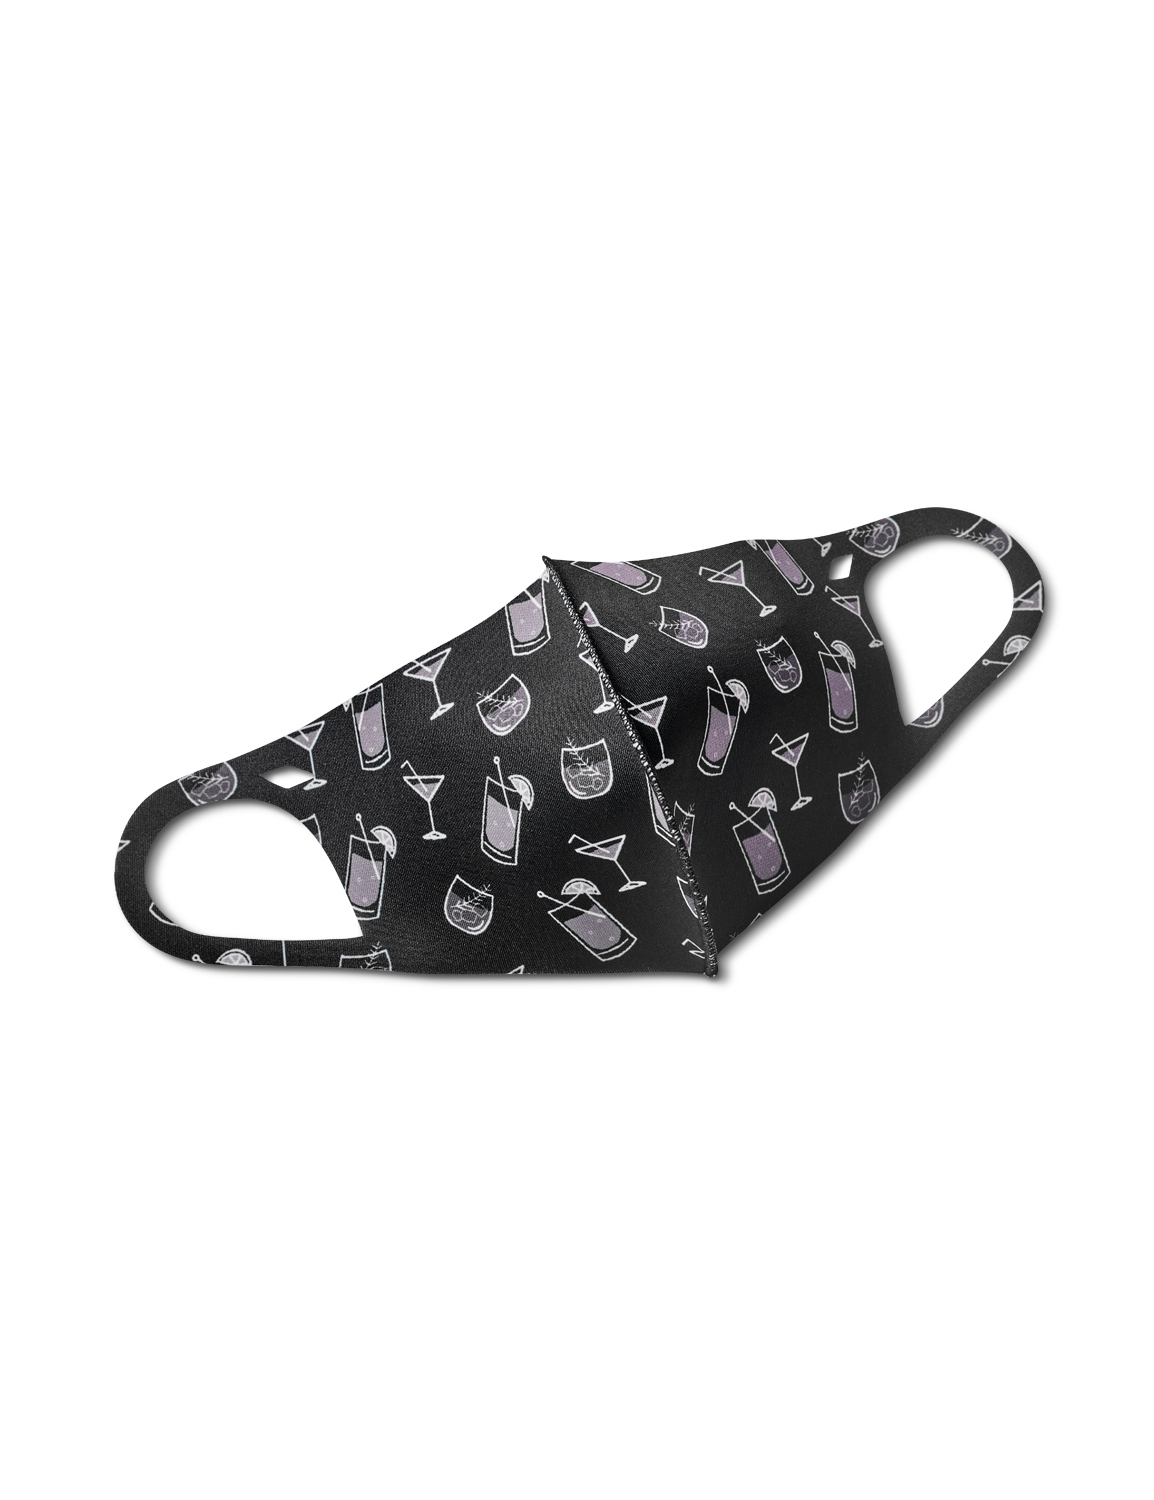 Cocktails Anti-Bacterial Fashion Face Mask - Black/Grey - Front